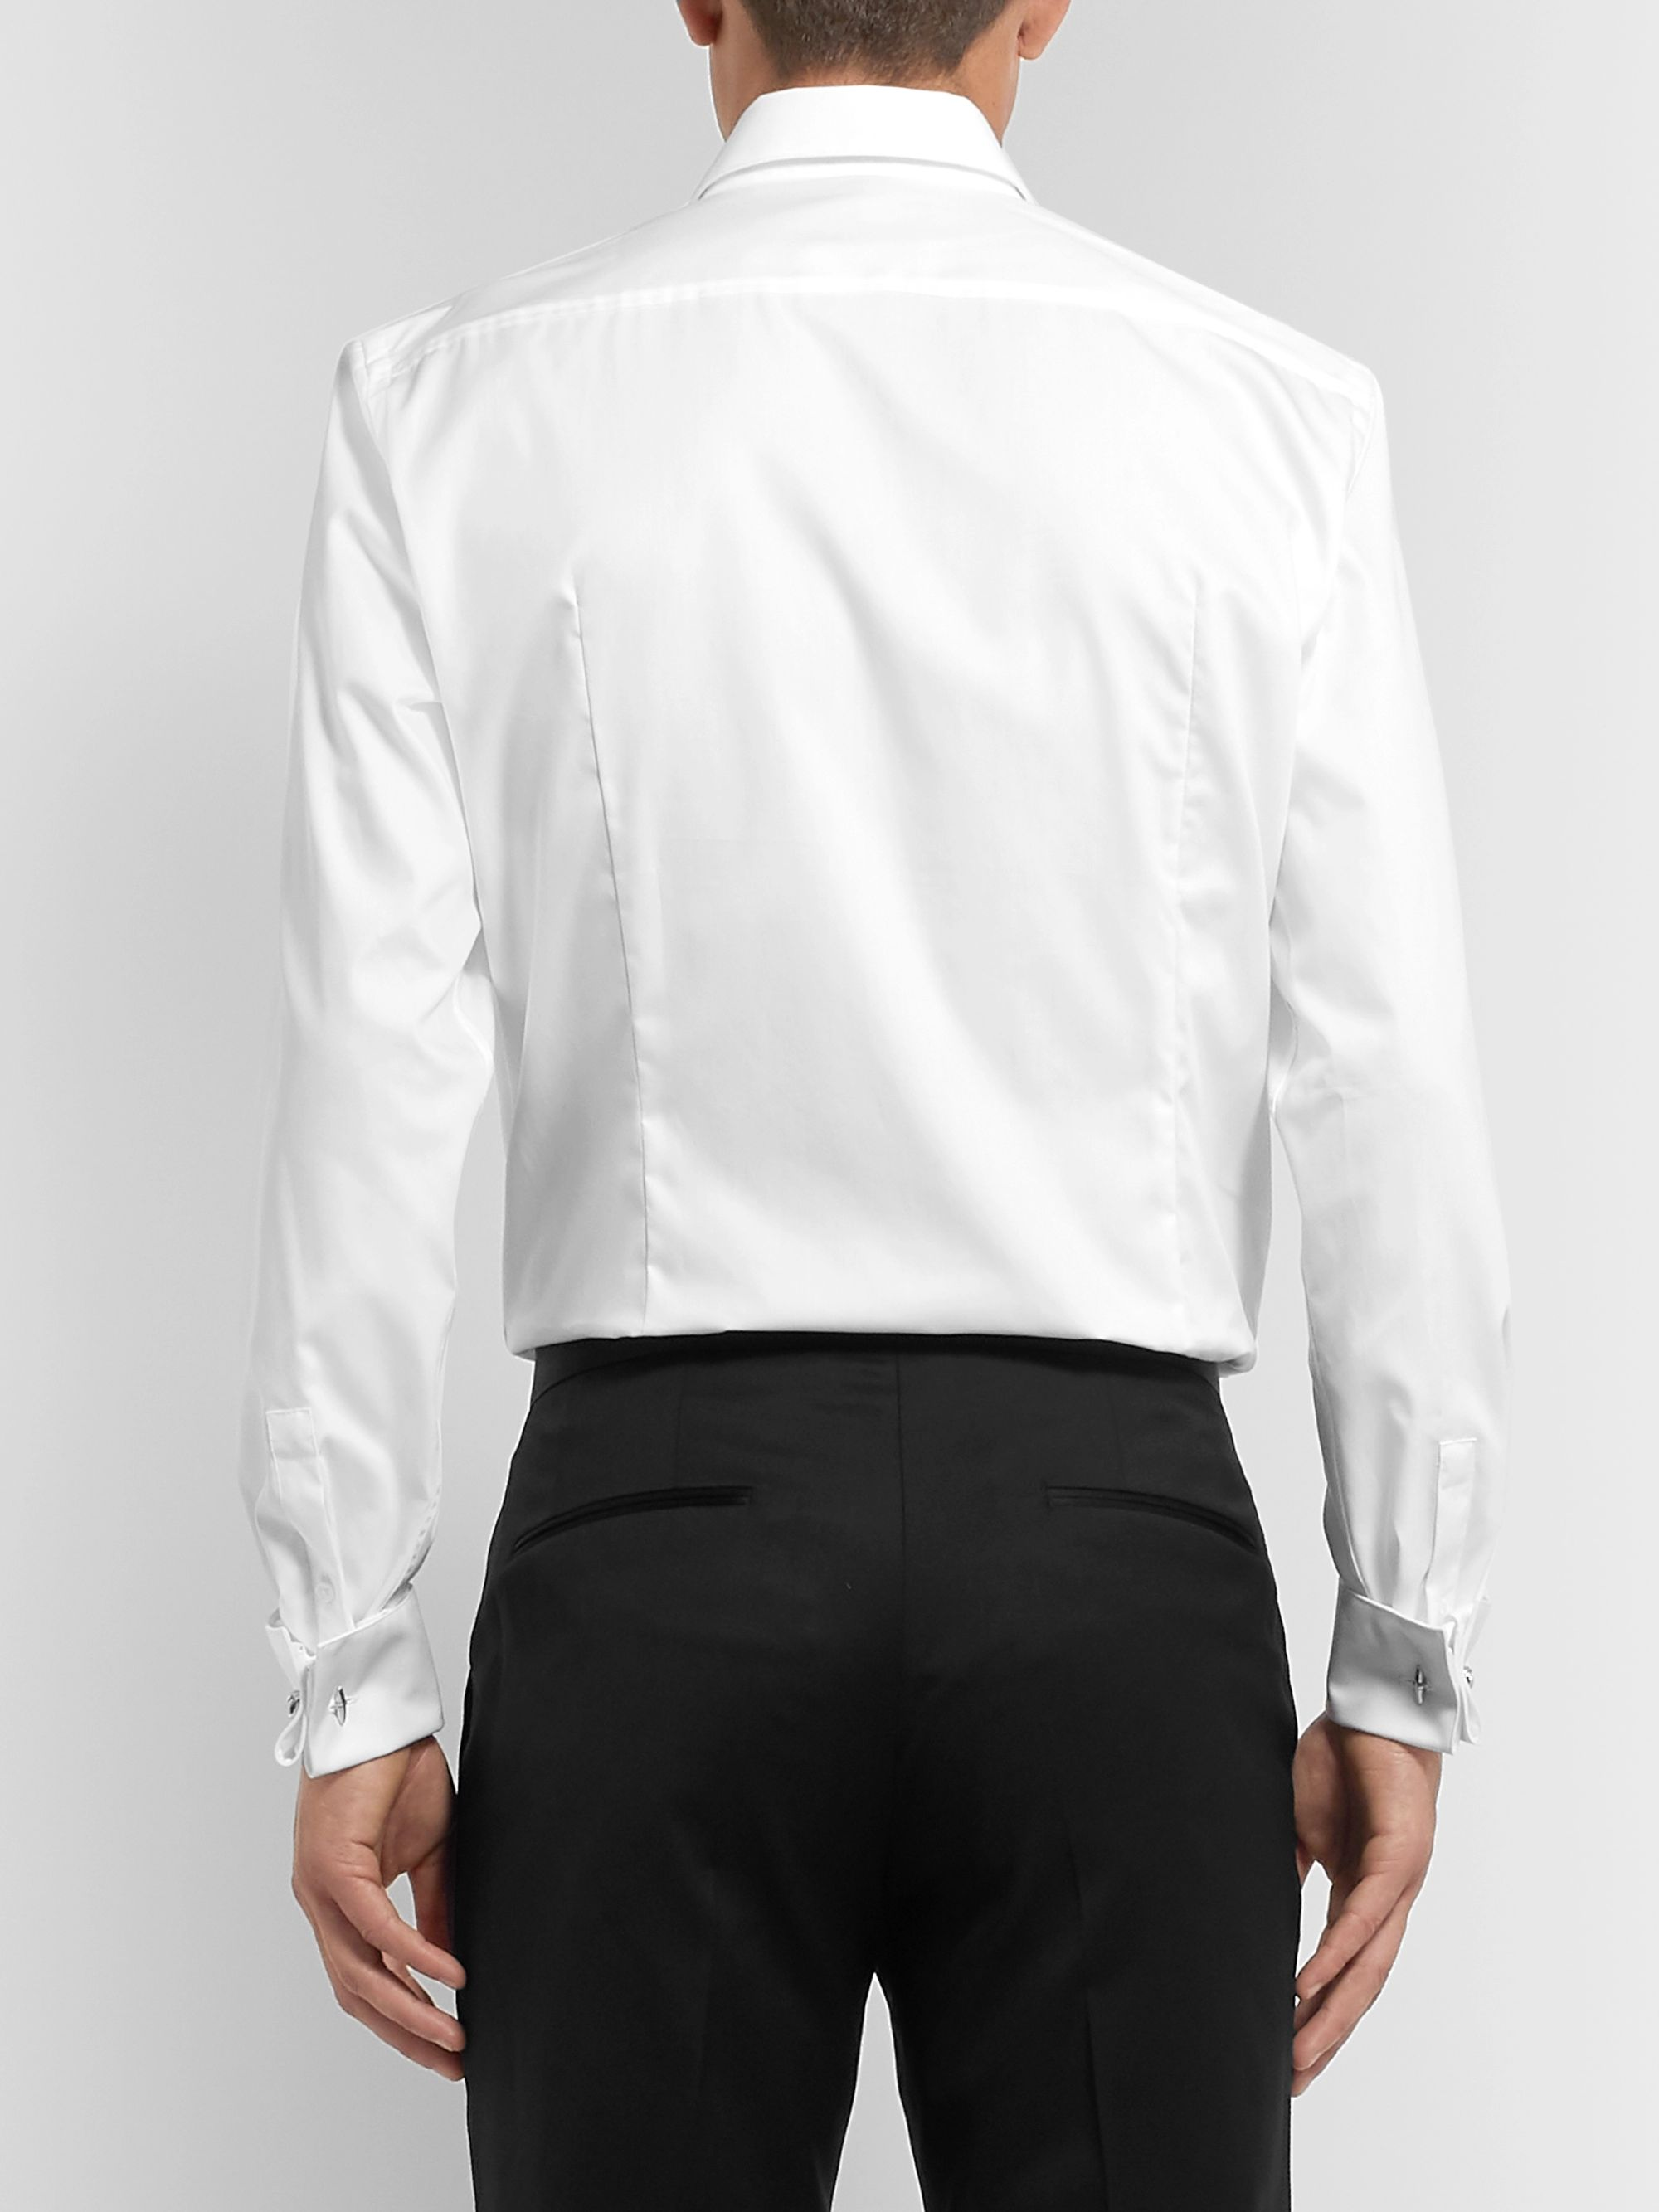 Hugo Boss White Slim-Fit Cutaway-Collar Pleated Bib-Front Cotton Tuxedo Shirt